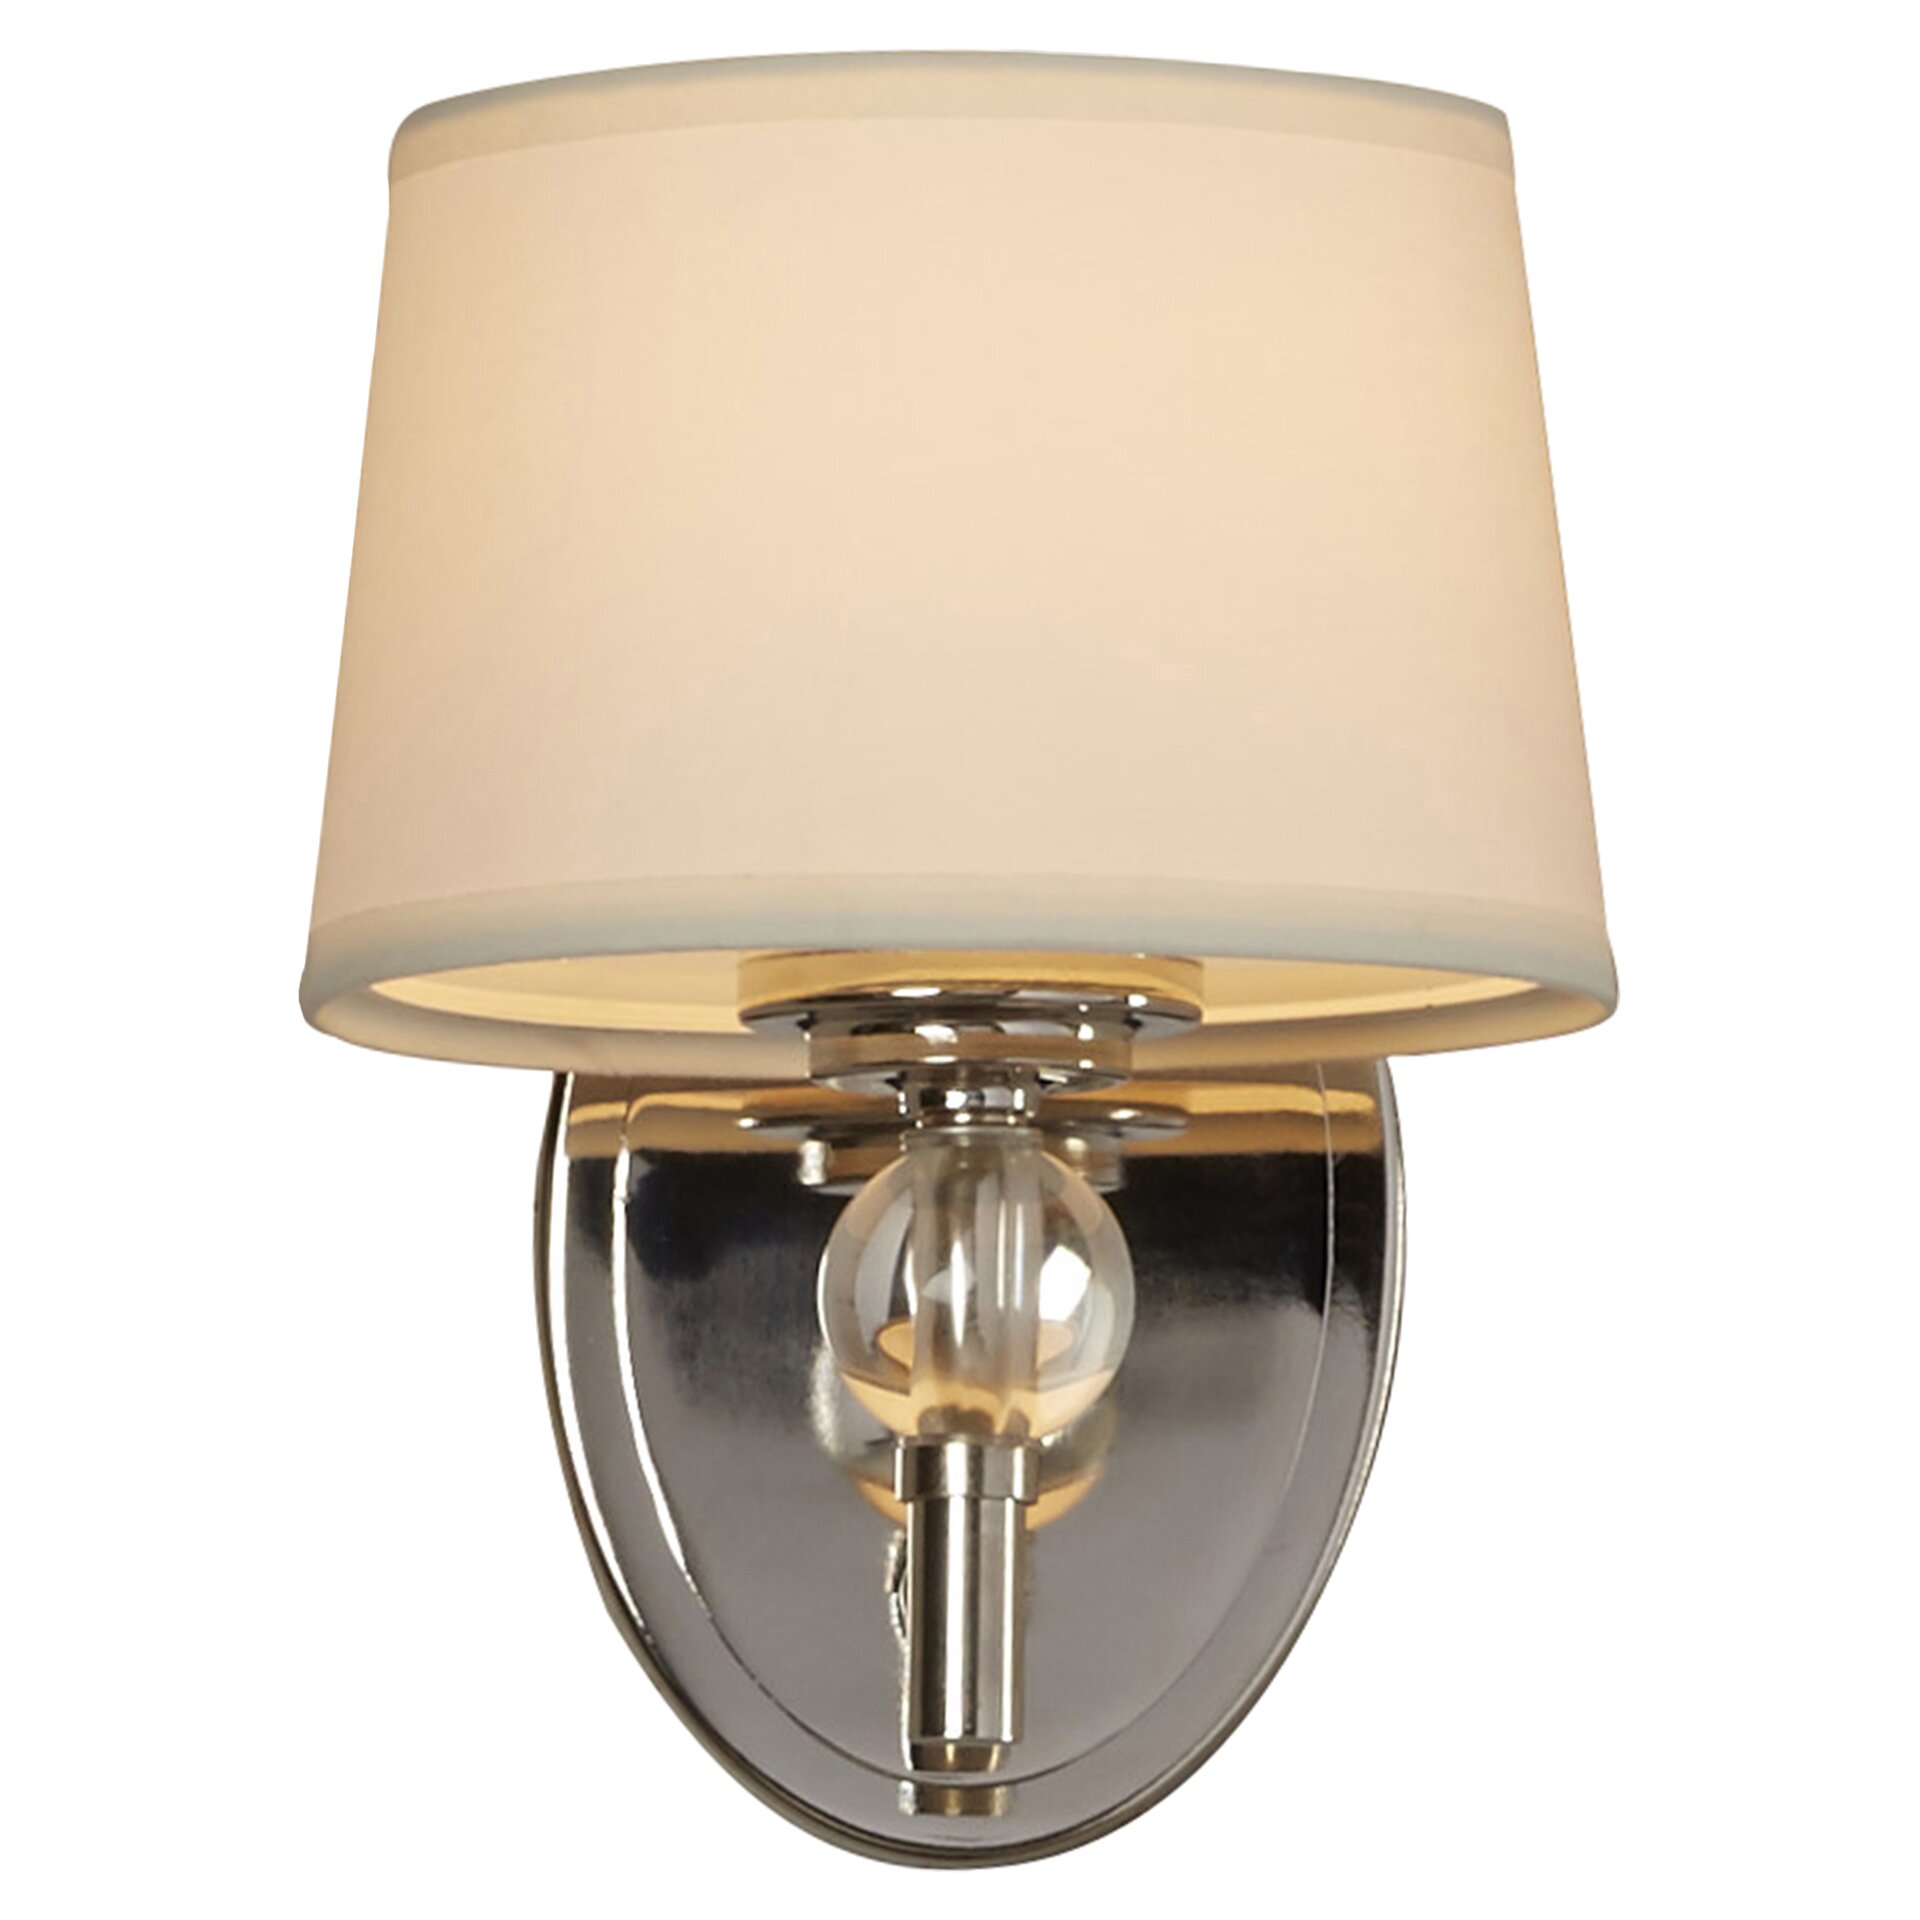 Wall Sconce With Crystal Ball : House of Hampton Gus Crystal Ball 1 Light Wall Sconce & Reviews Wayfair Supply